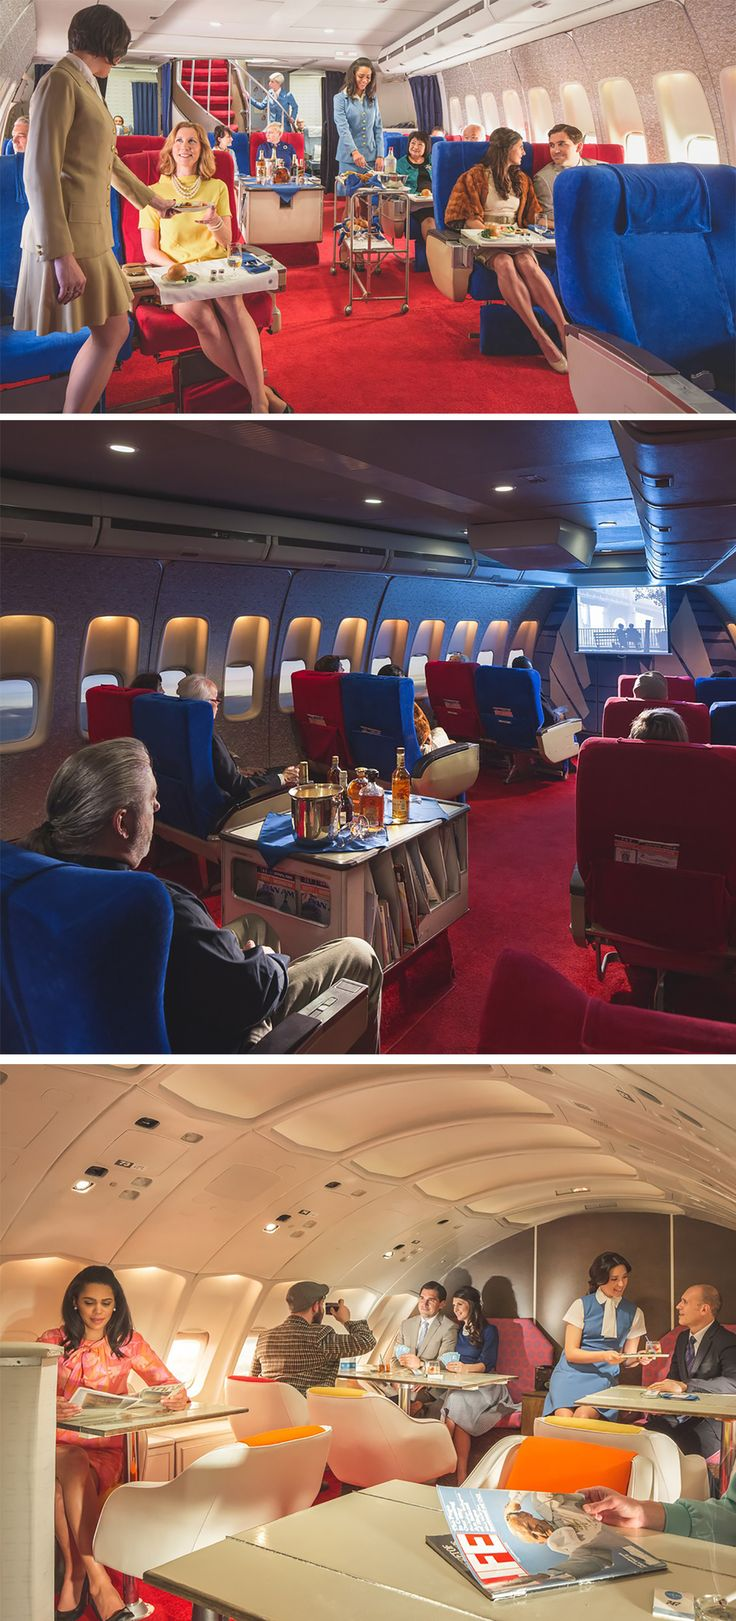 "Air Hollywood has restored a [fake] Pan Am 747 plane back to its 1970s glory for a four-hour ""flight"" experience including a four-course meal, a movie and cocktails."